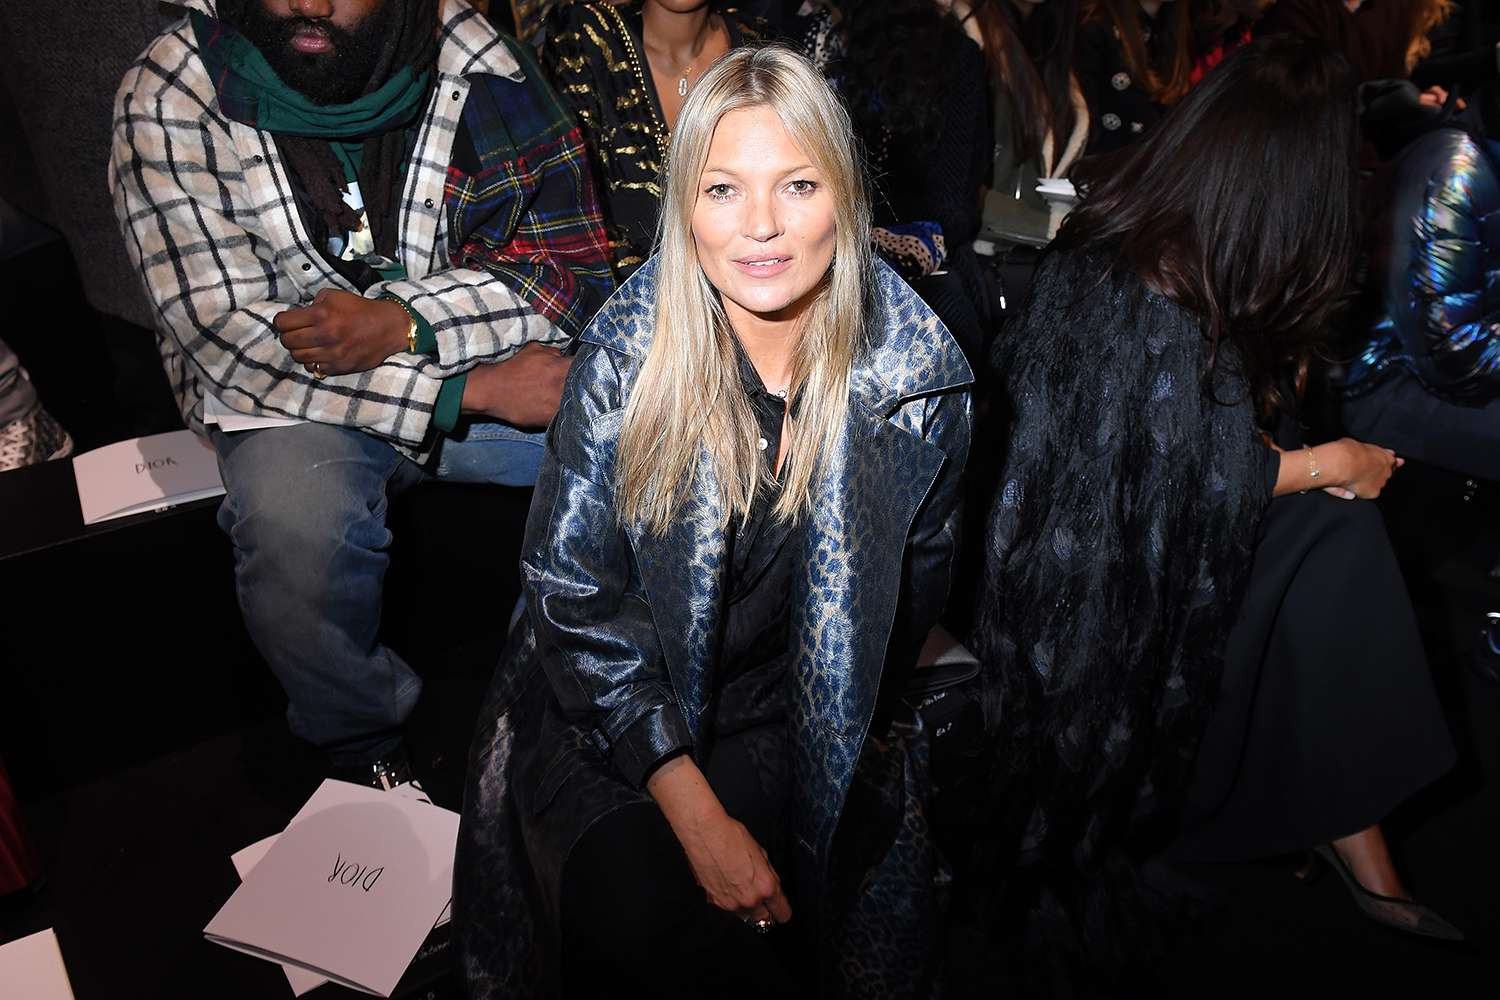 Kate Moss in the audience of a Dior fashion show.